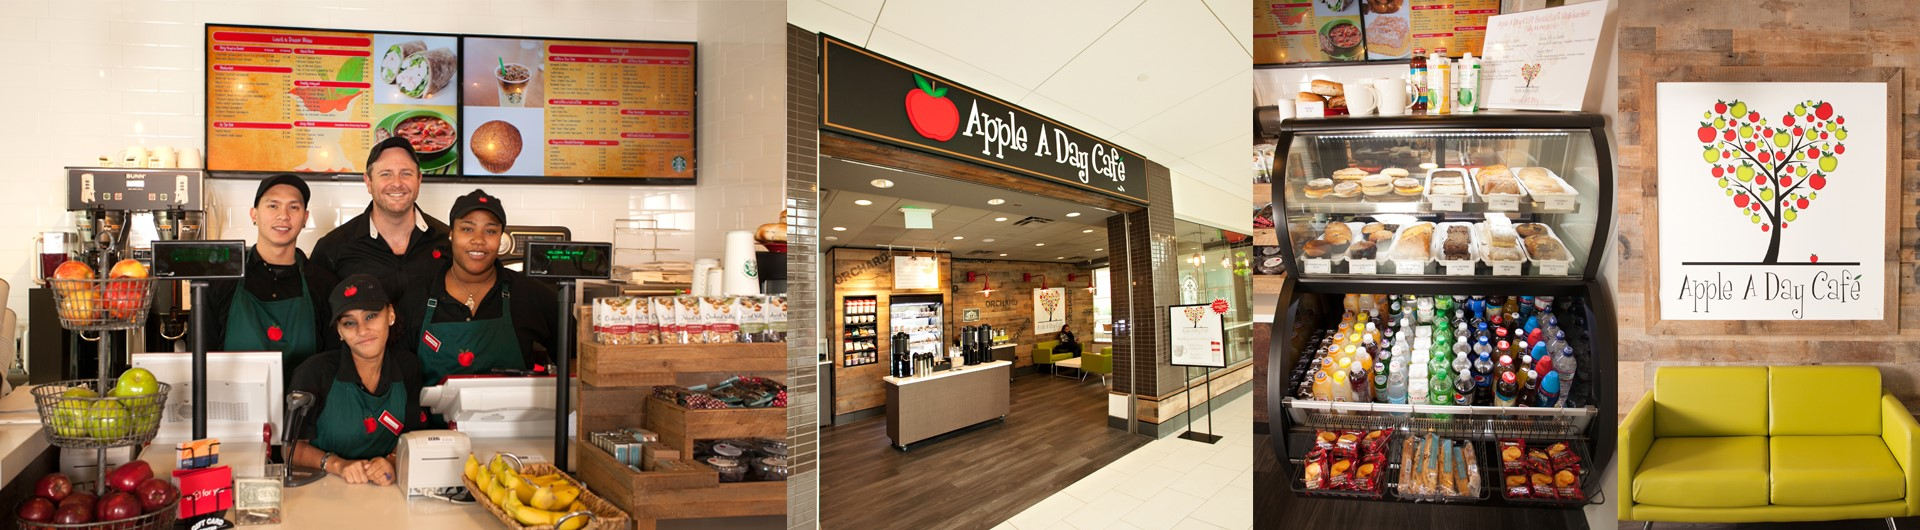 Apple A Day Cafe in New Jersey